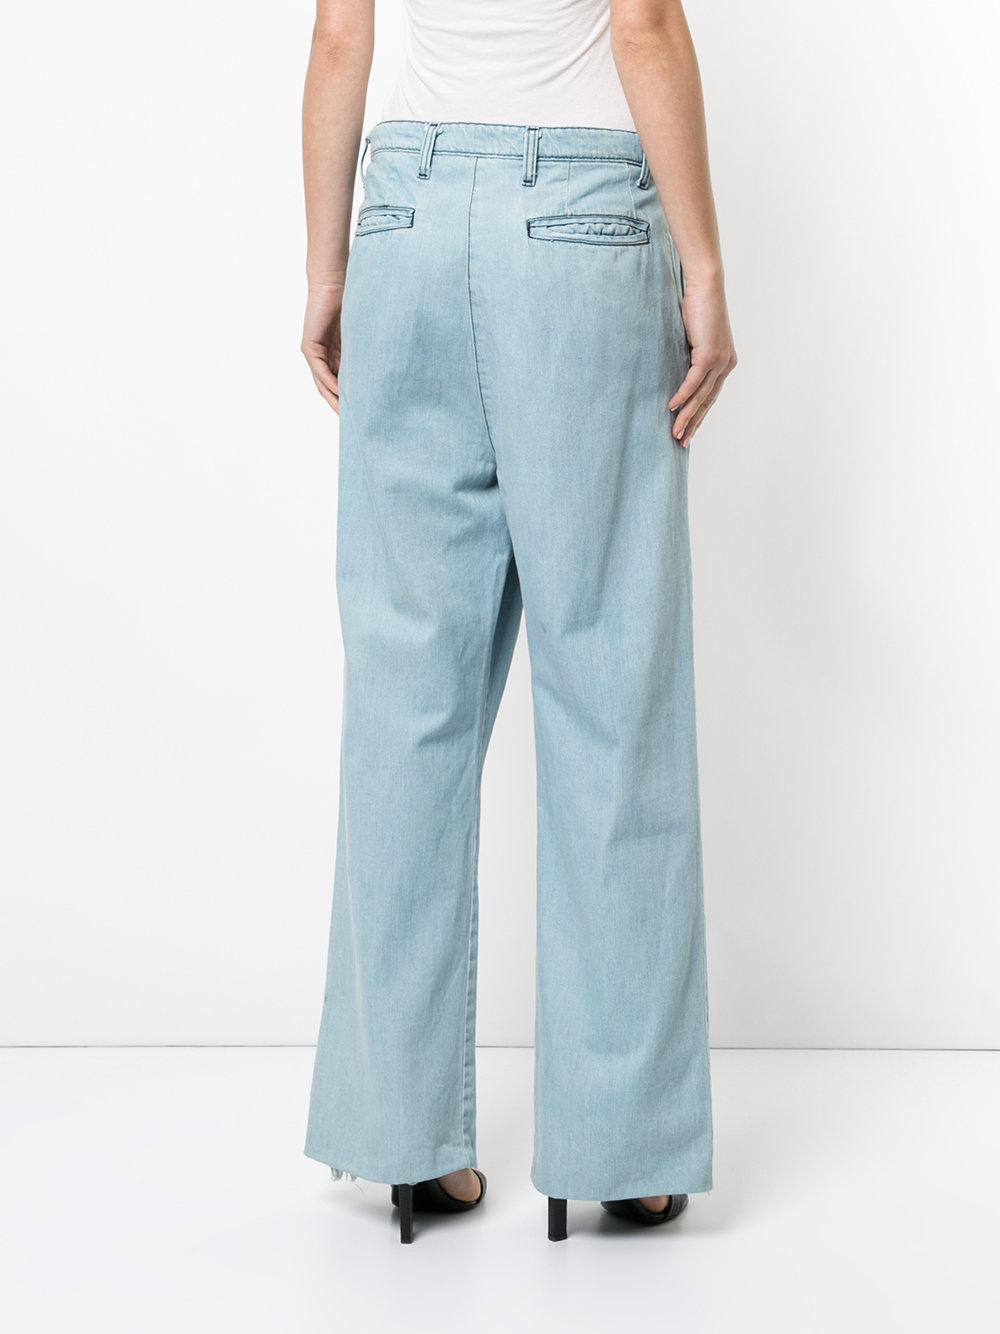 Strateas Carlucci Cotton Tunnel Pleat Trousers in Blue